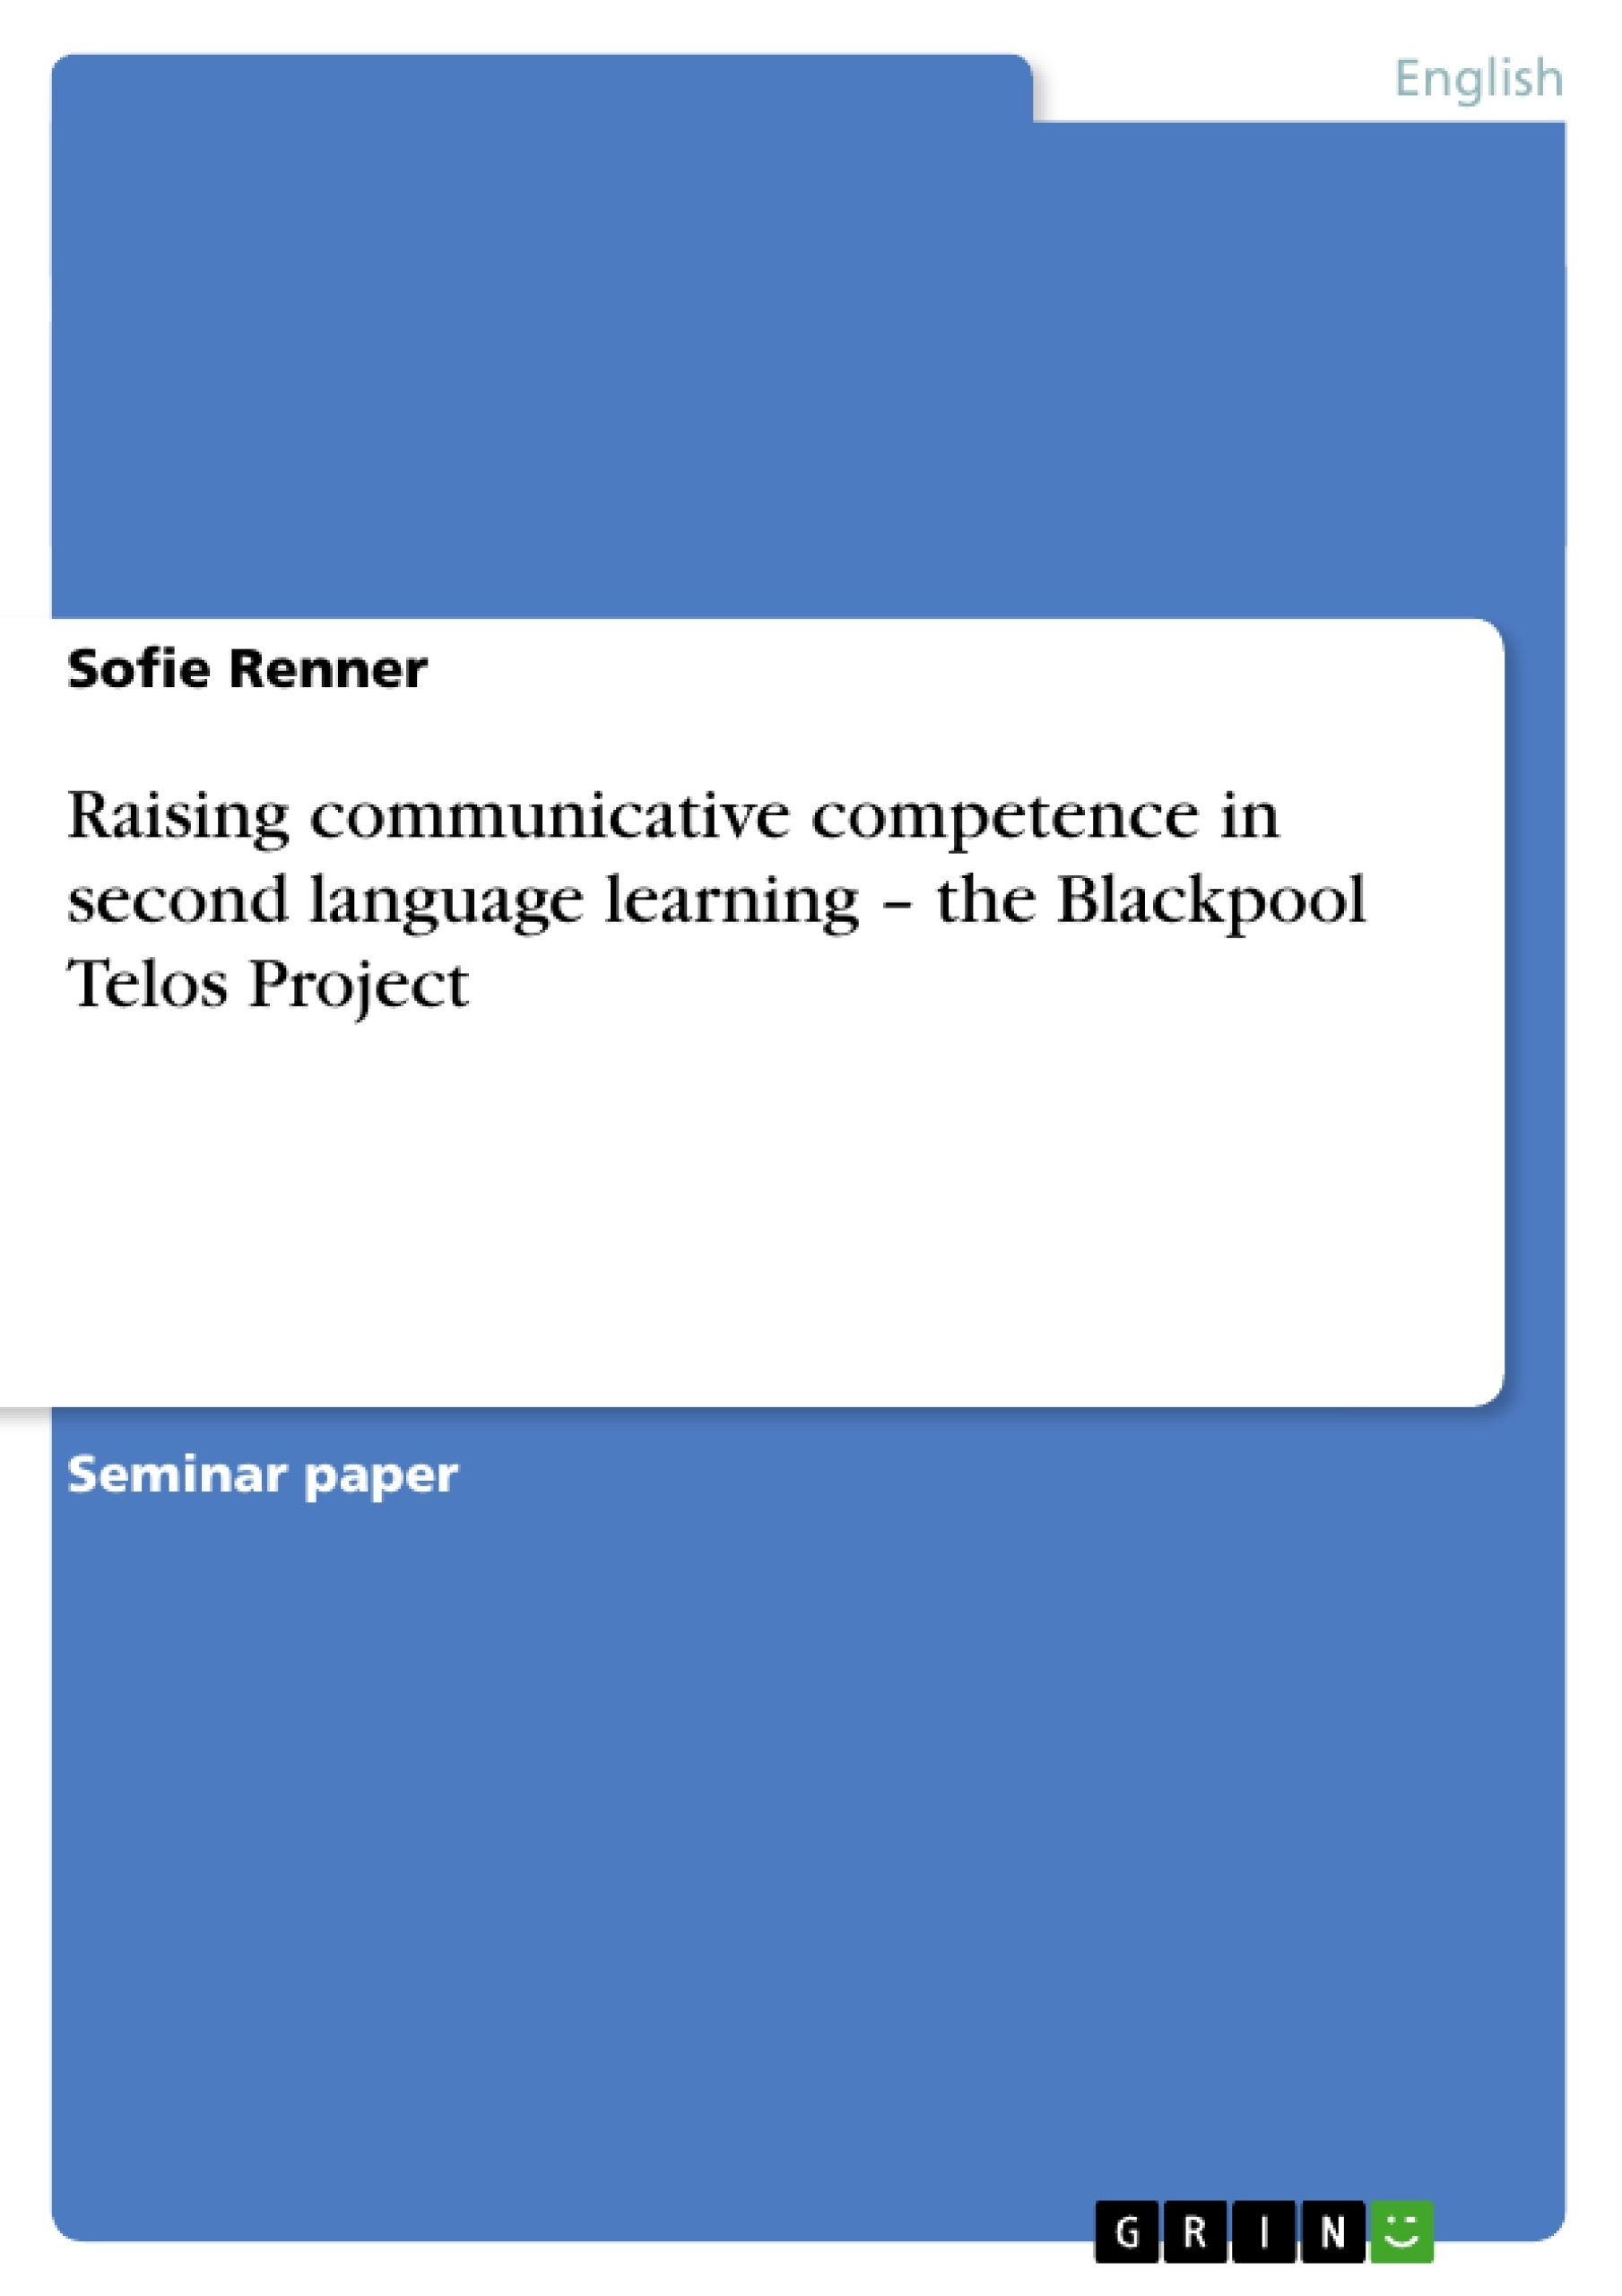 Title: Raising communicative competence in second language learning – the Blackpool Telos Project